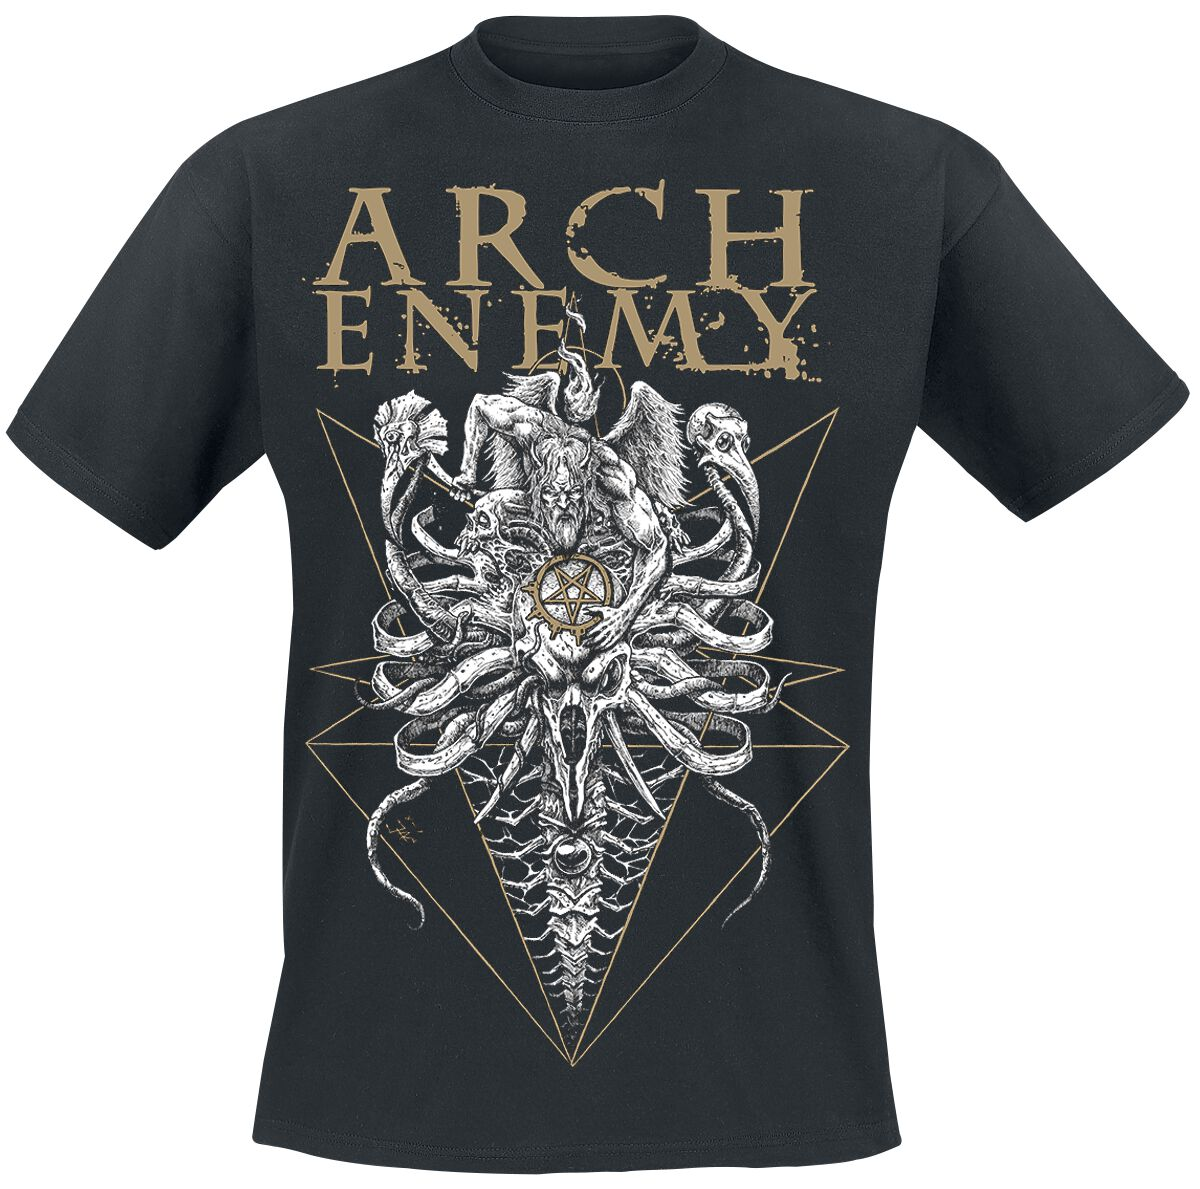 Image of Arch Enemy A Fight I Must Win Tour T-Shirt schwarz